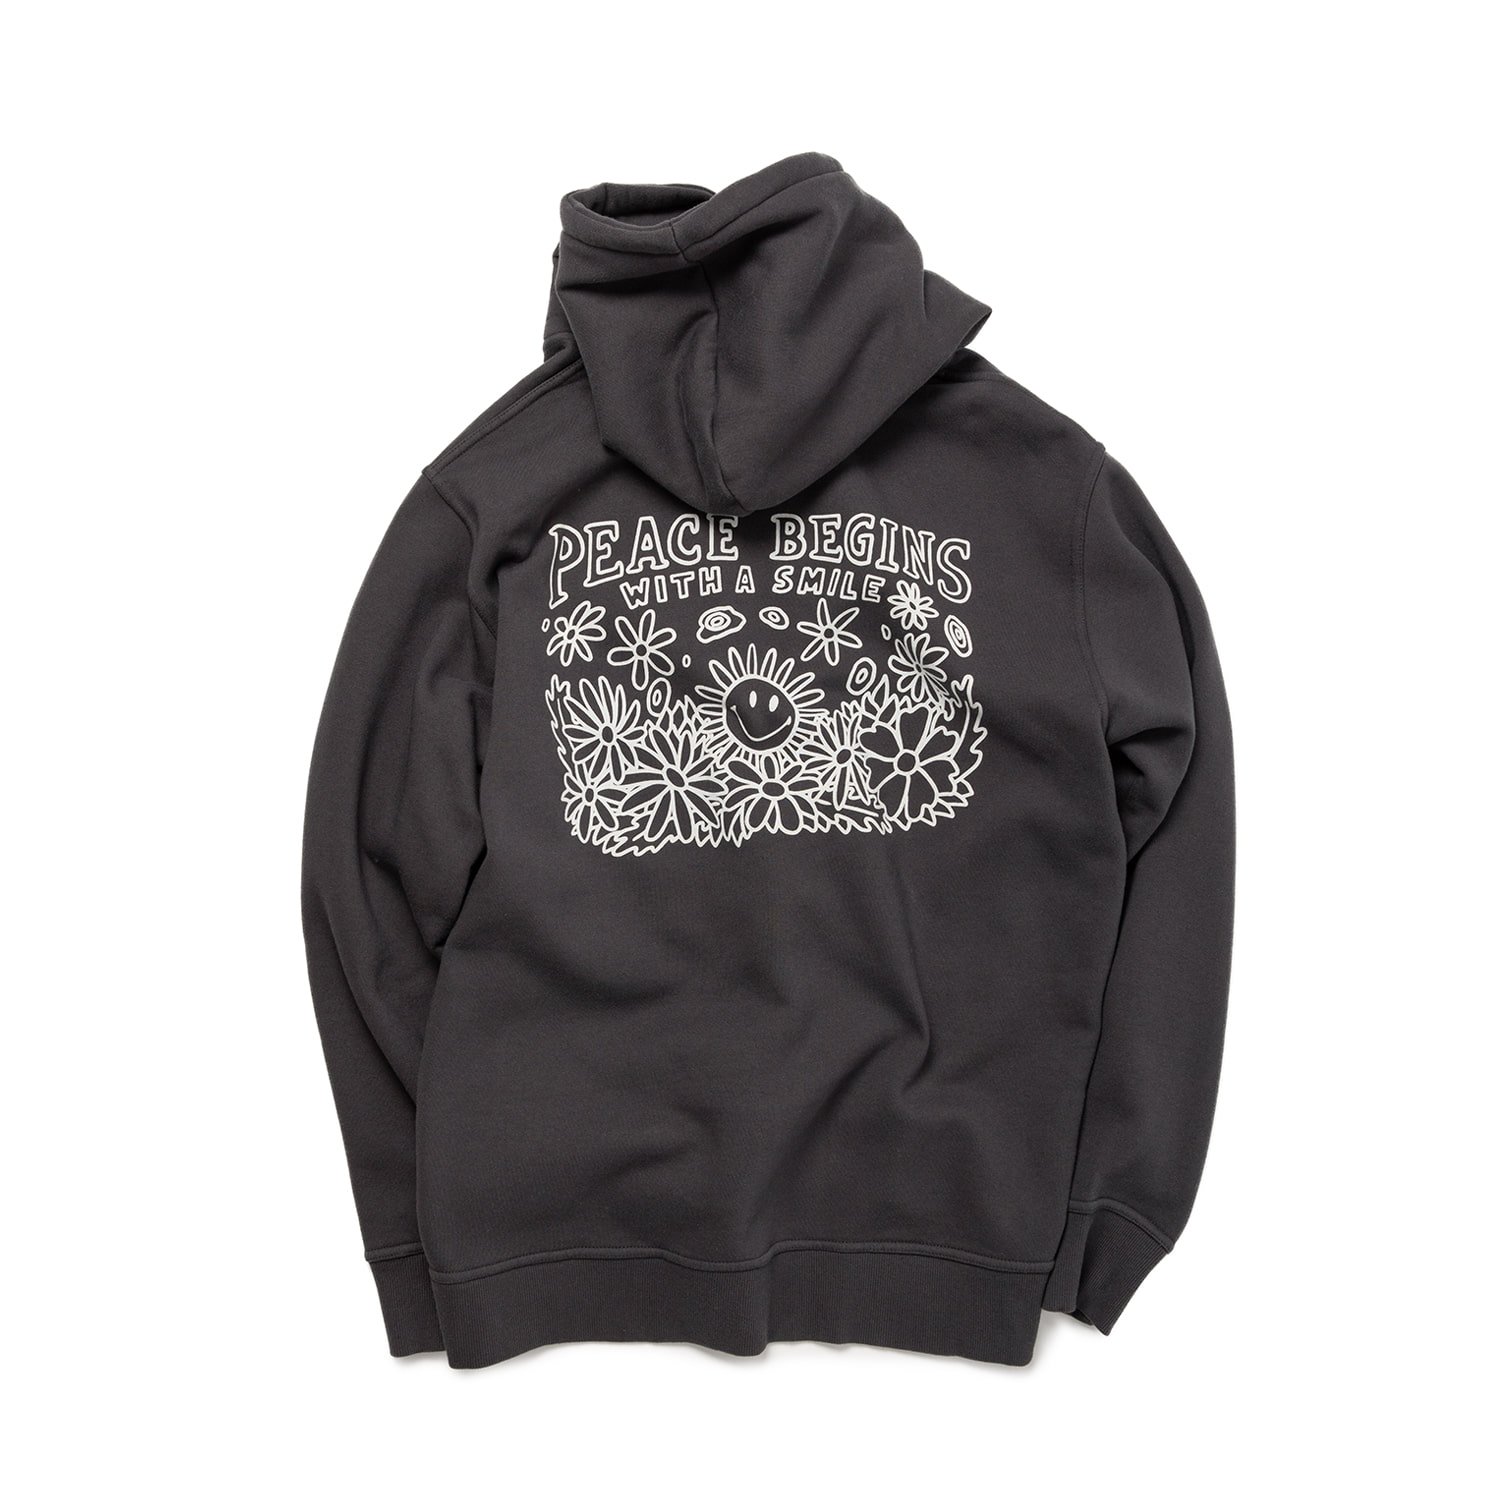 PEACE BEGIN SMILE HOODIE - IRON GRAY